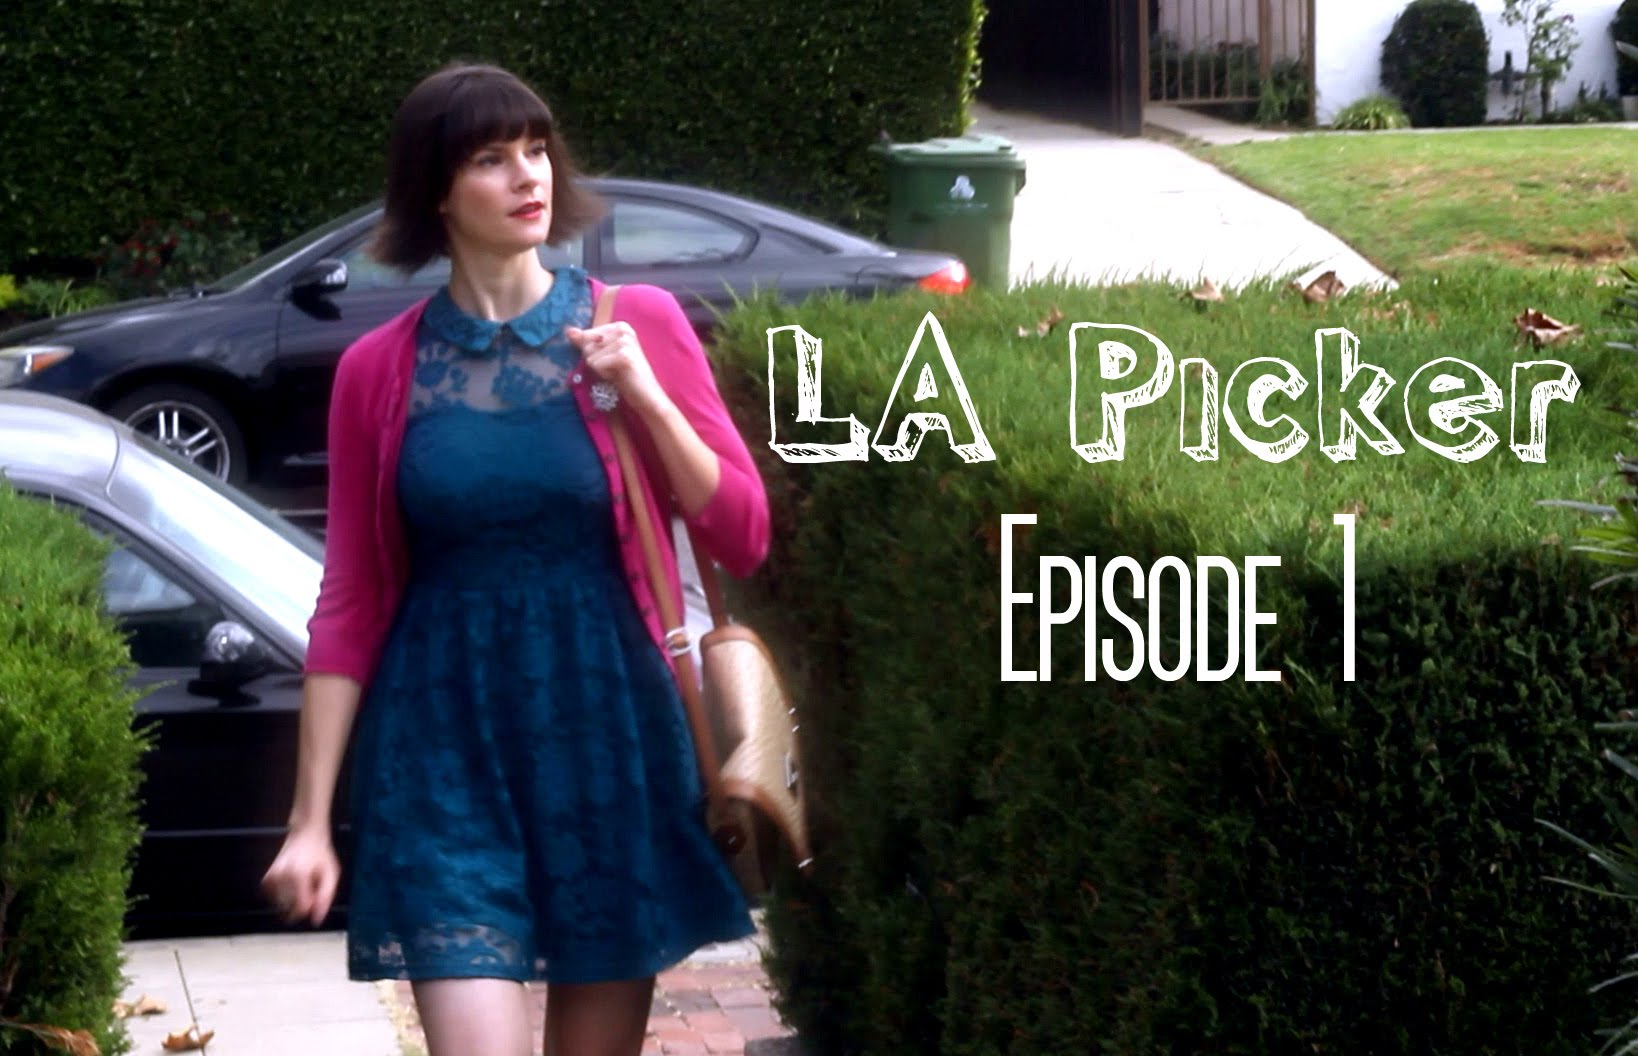 L.A. Picker Season 2 Promo 3